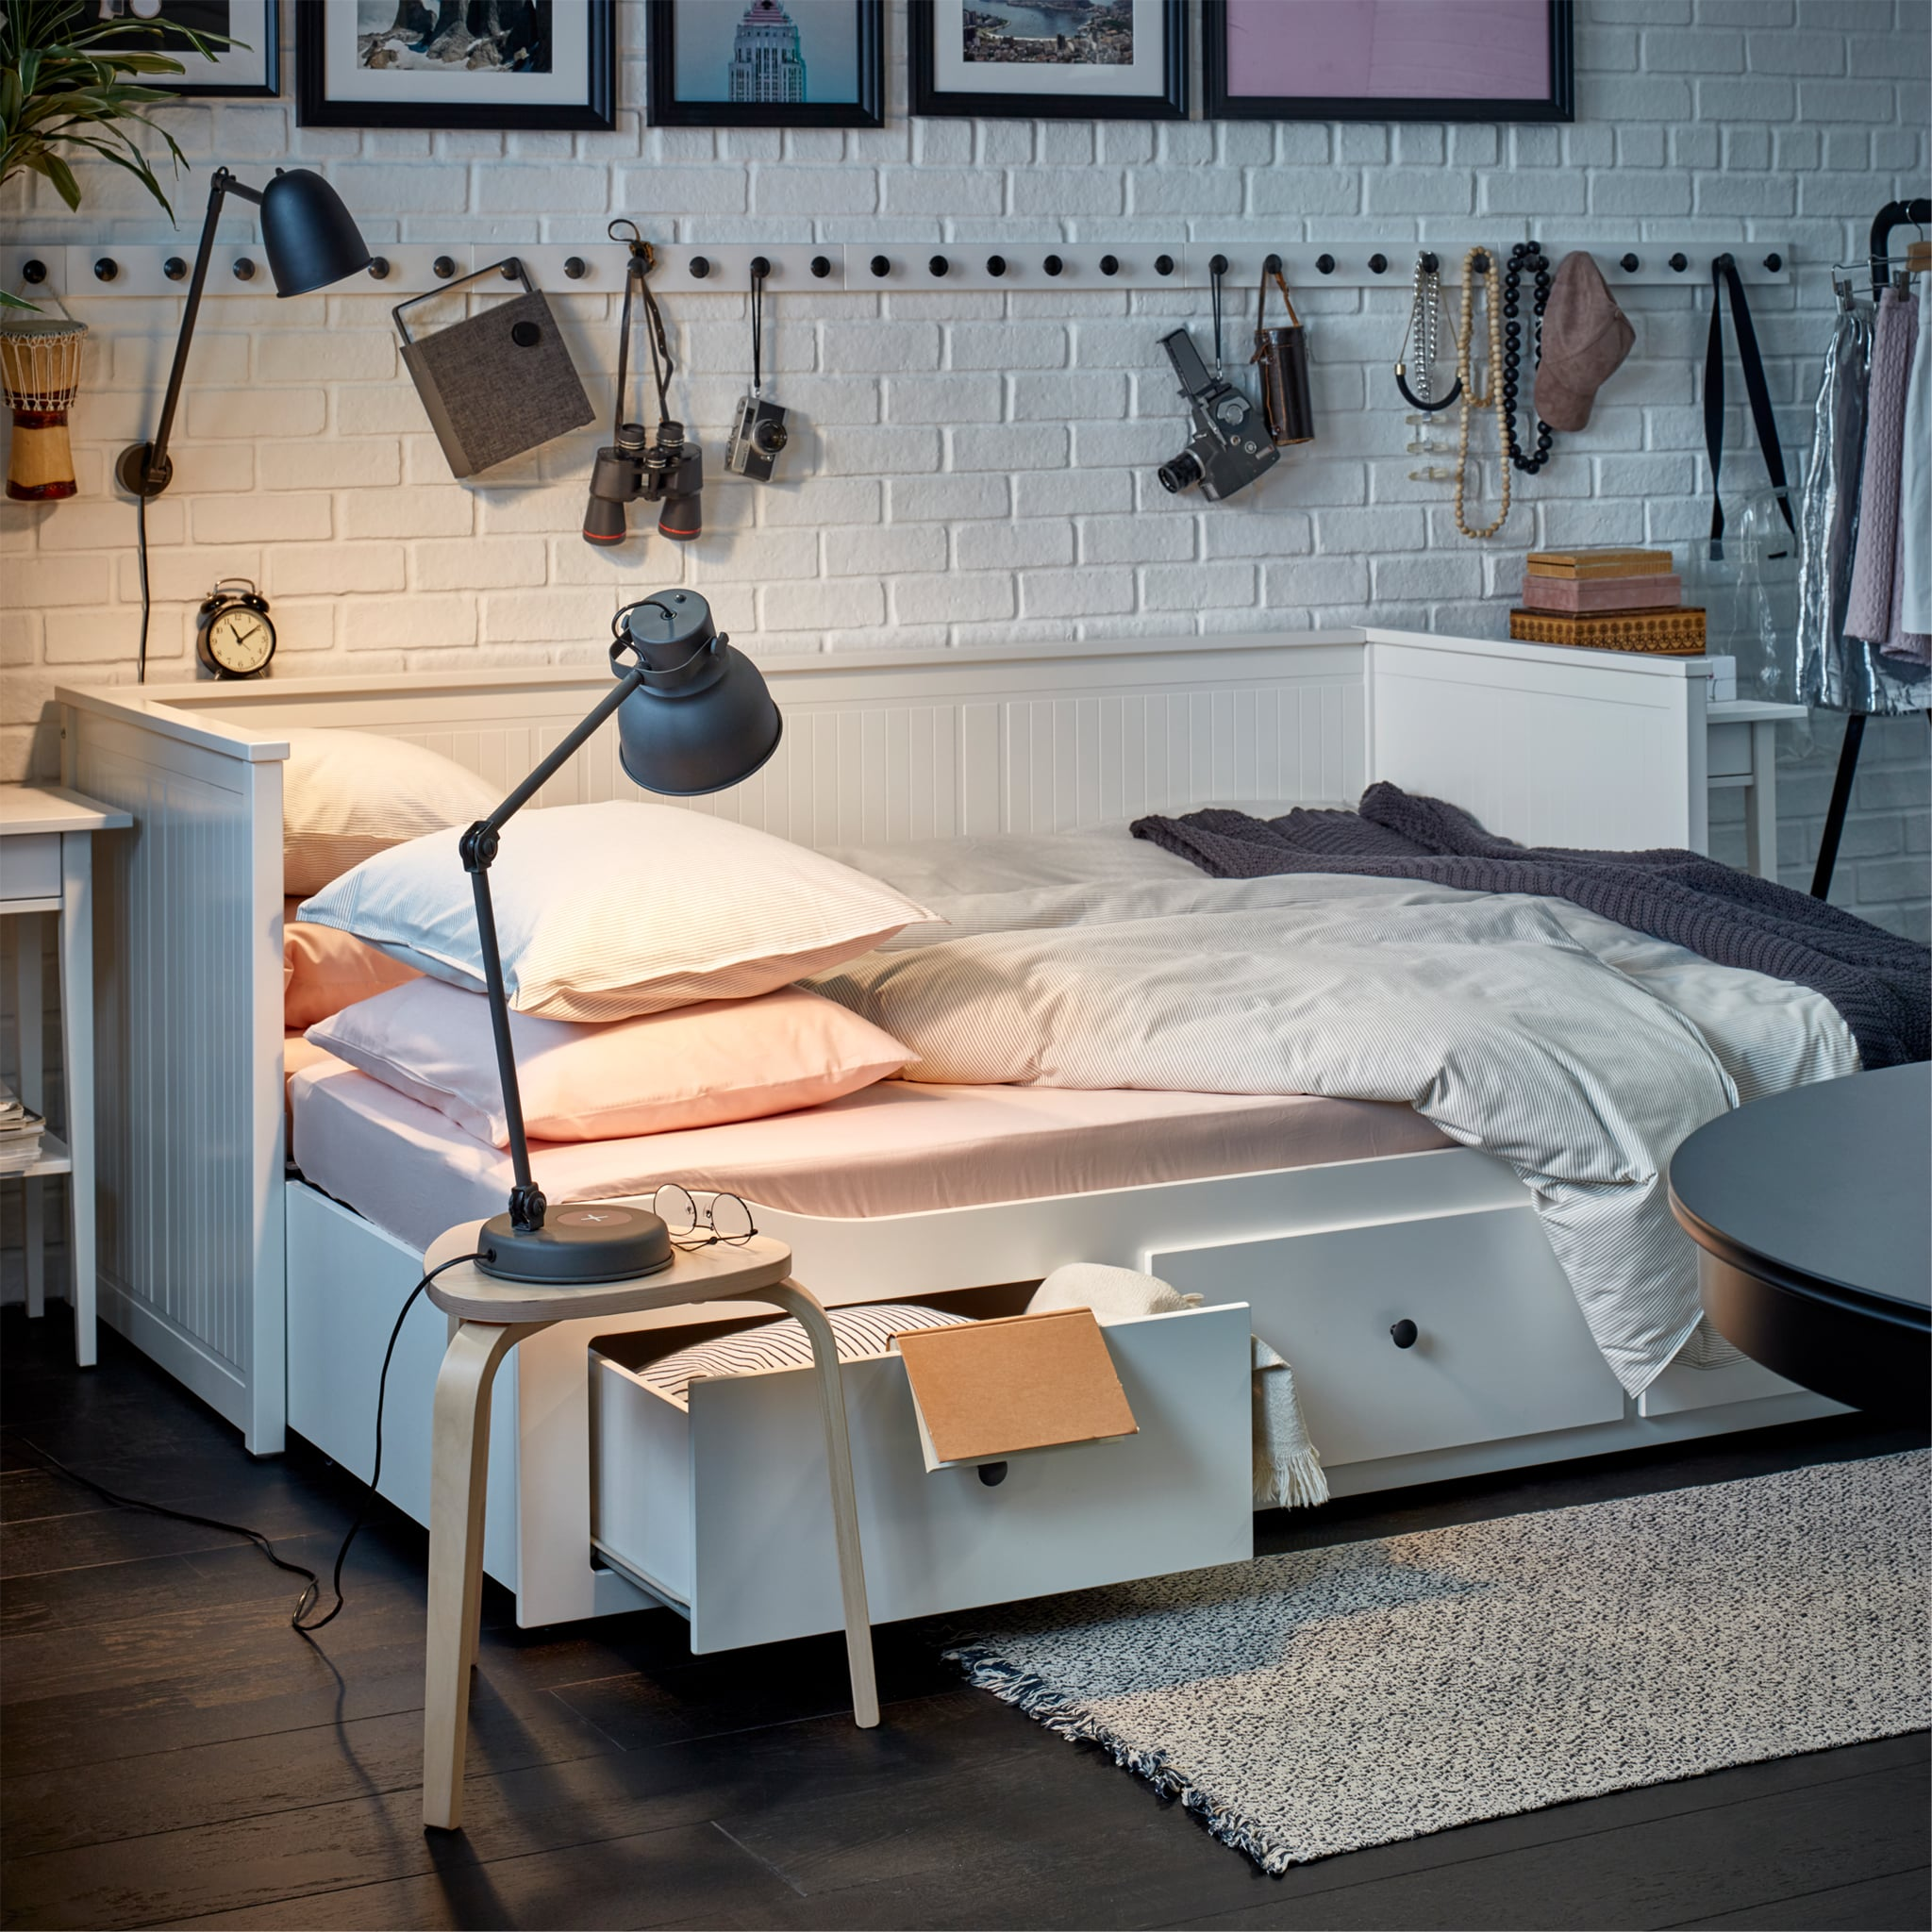 A white daybed that is made as a bed and it's filled with cosy bed textiles and next to it is a stool with a lit table lamp.